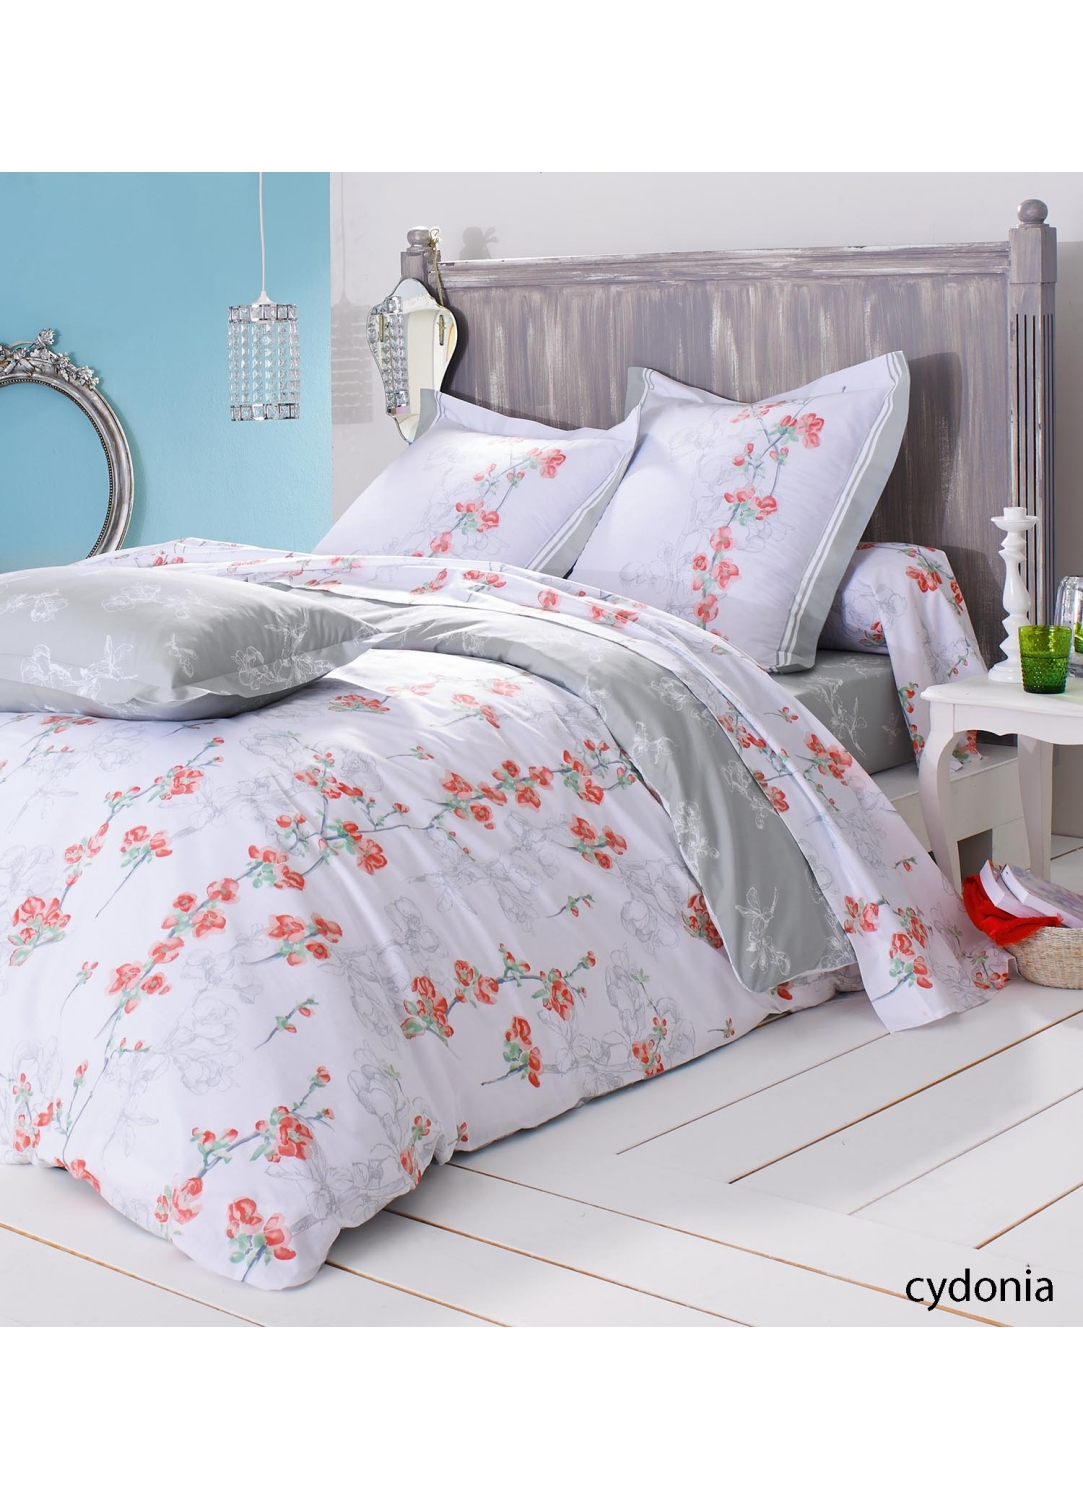 drap housse cydonia aux imprim s floraux blancs blanc rouge homemaison vente en ligne. Black Bedroom Furniture Sets. Home Design Ideas